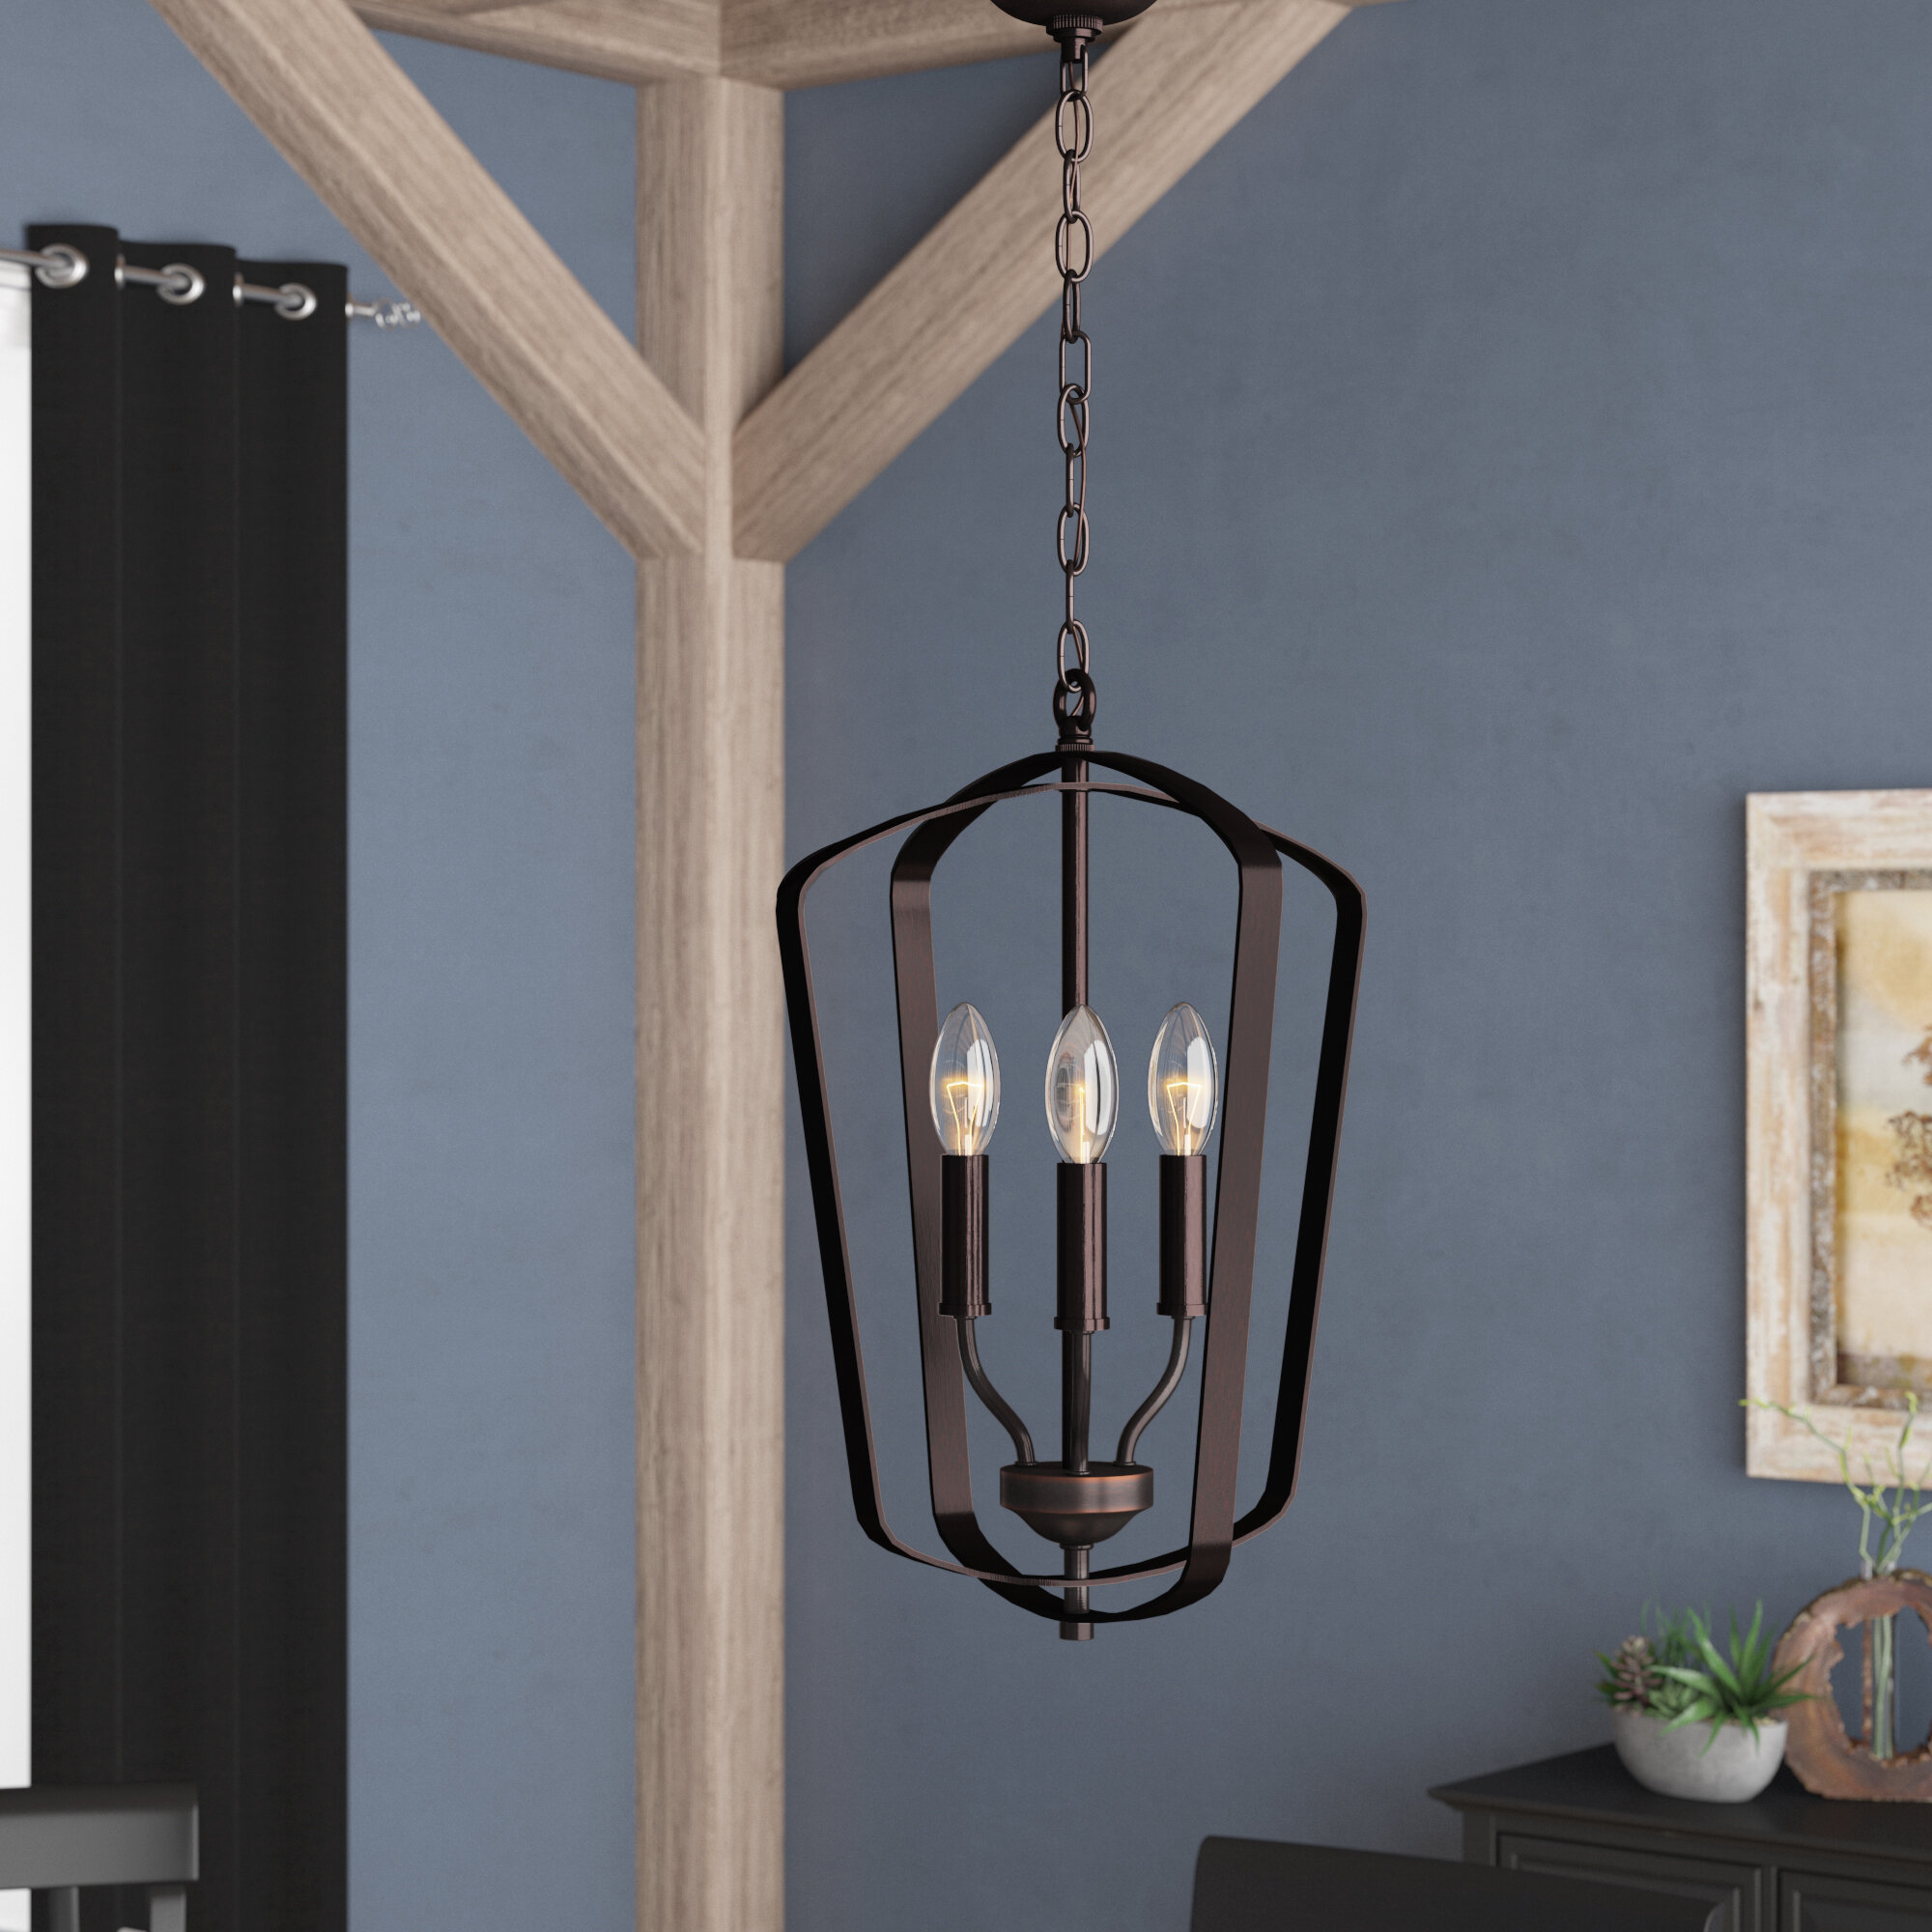 Firman 3-Light Single Geometric Pendant within Chauvin 3-Light Lantern Geometric Pendants (Image 13 of 30)